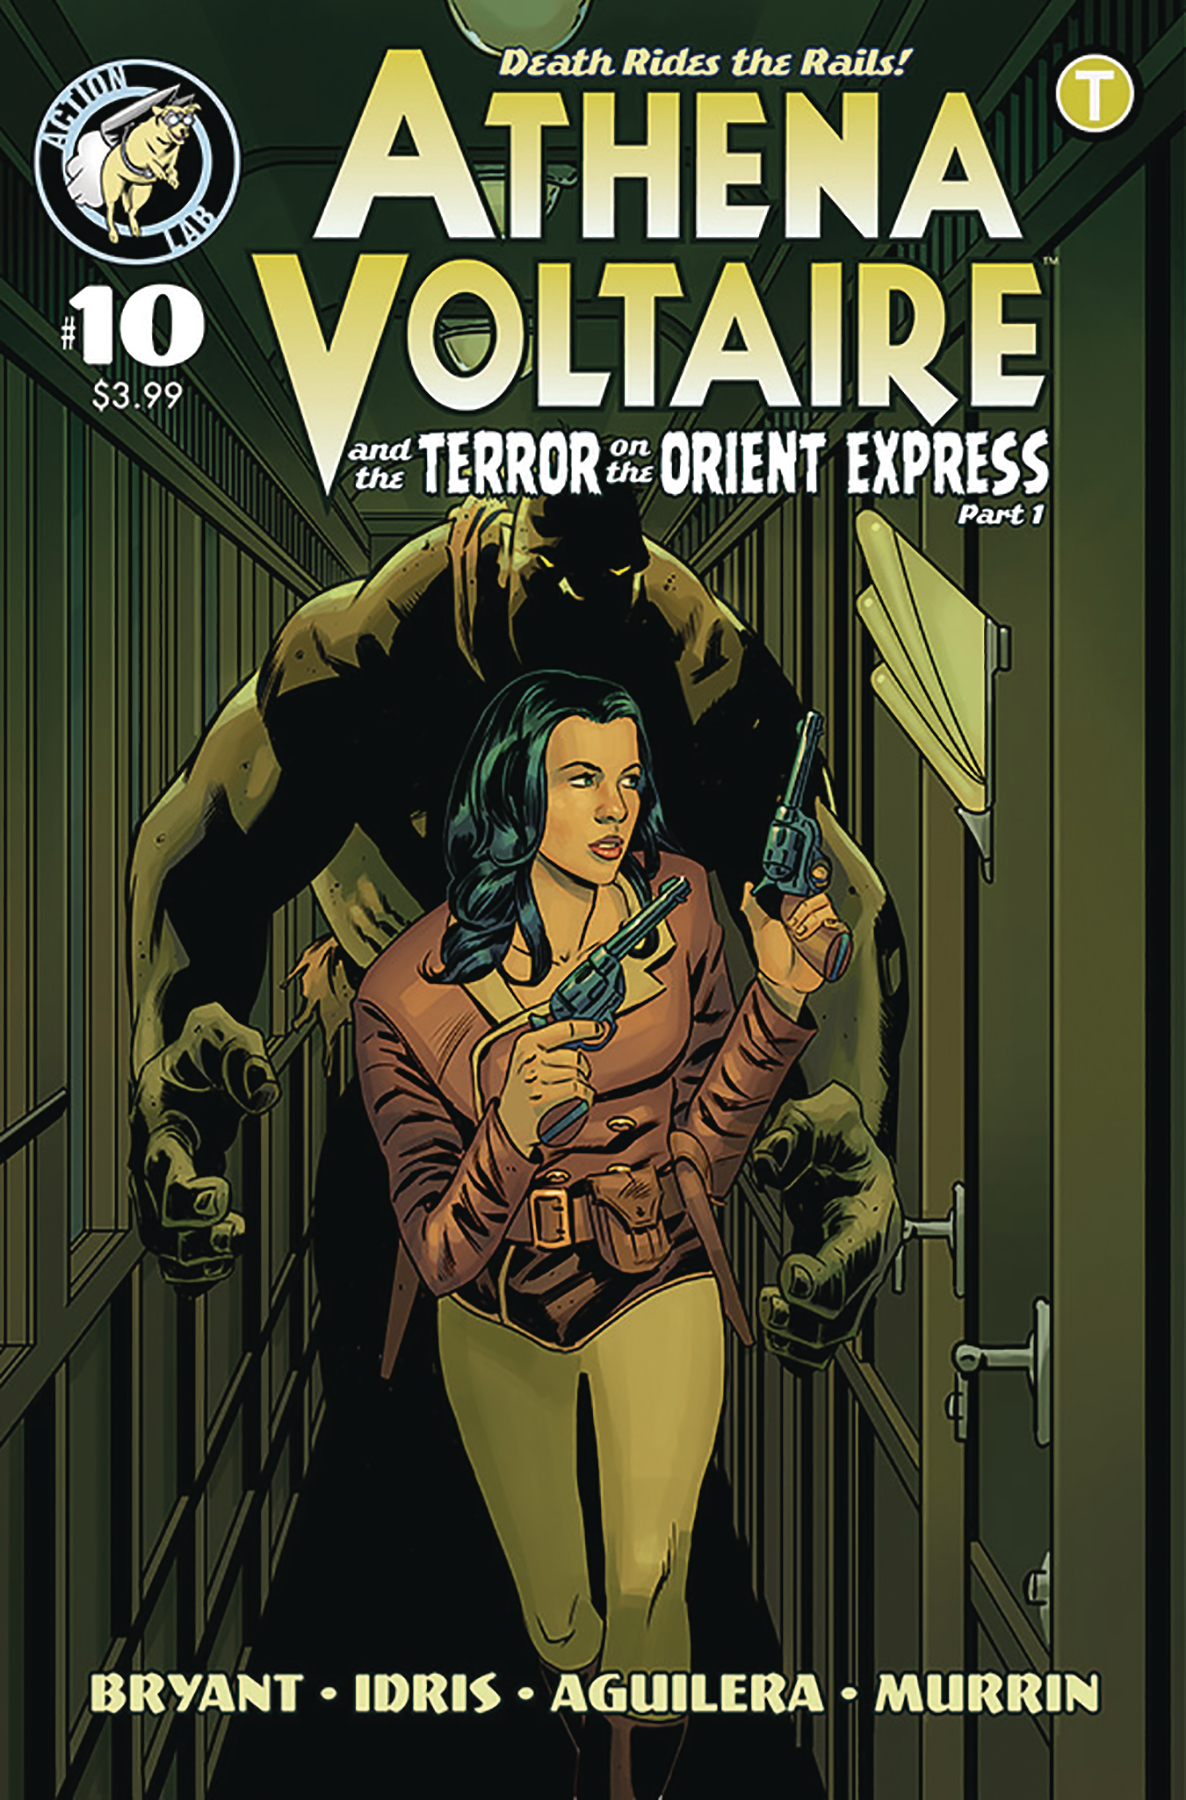 ATHENA VOLTAIRE 2018 ONGOING #10 CVR A BRYANT